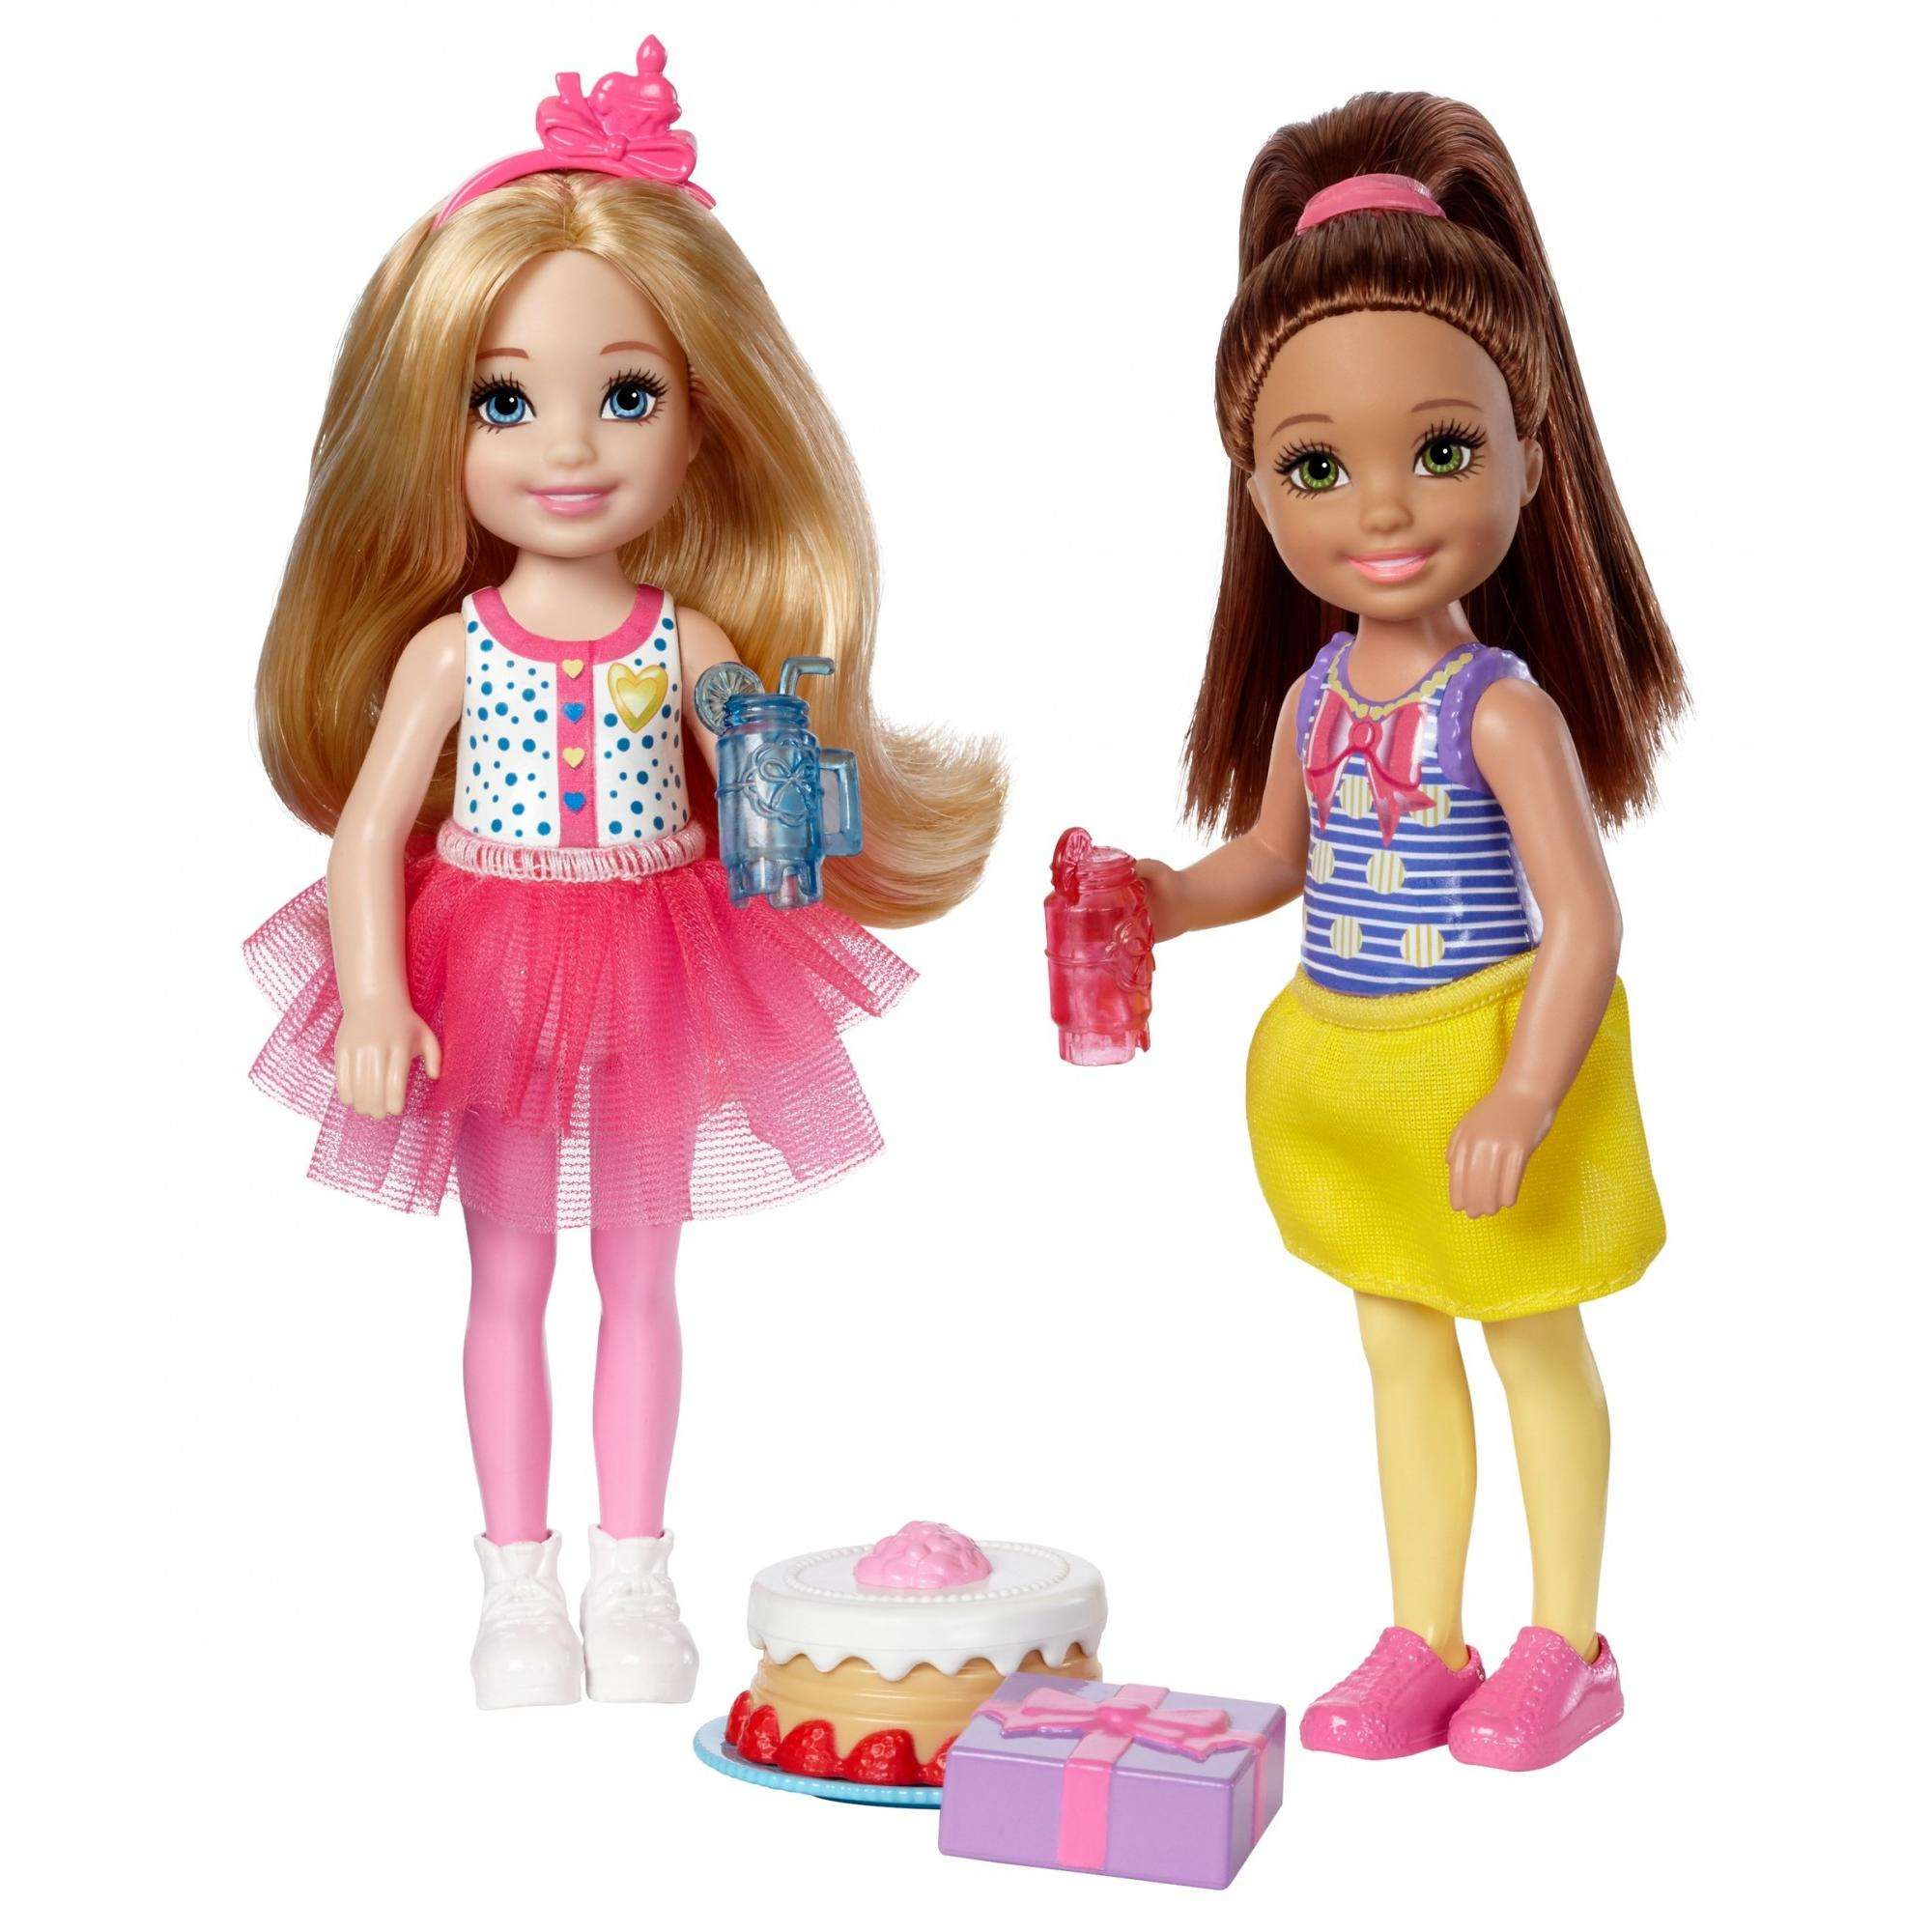 Barbie Club Chelsea Dolls   Accessories - Walmart.com c90158287